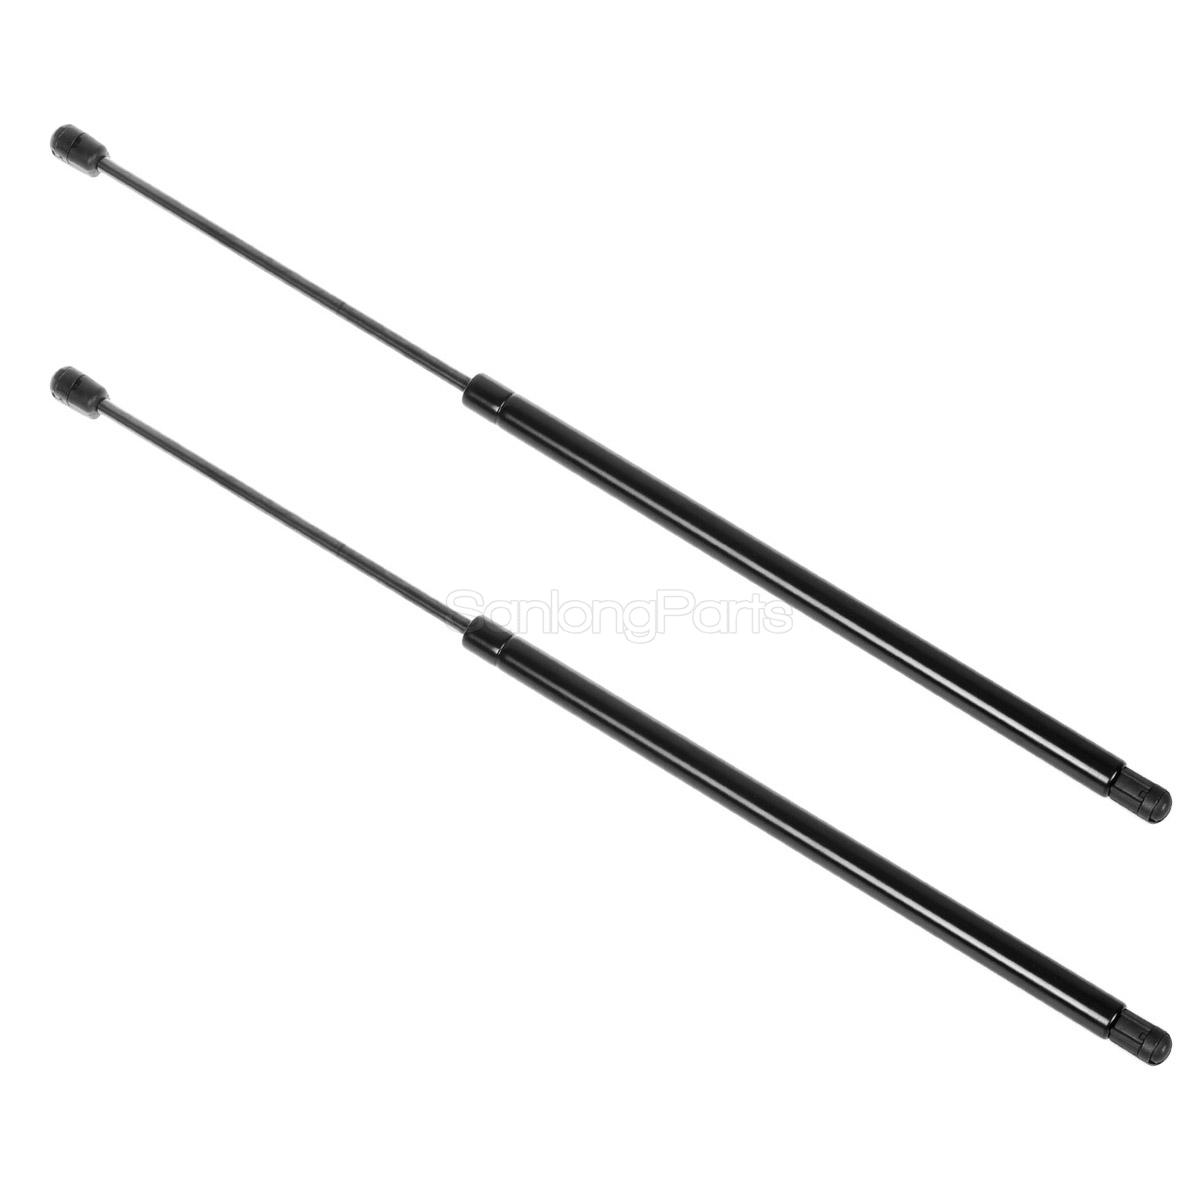 1Pair 6123 Rear Hatch Lift Supports Shocks Struts For